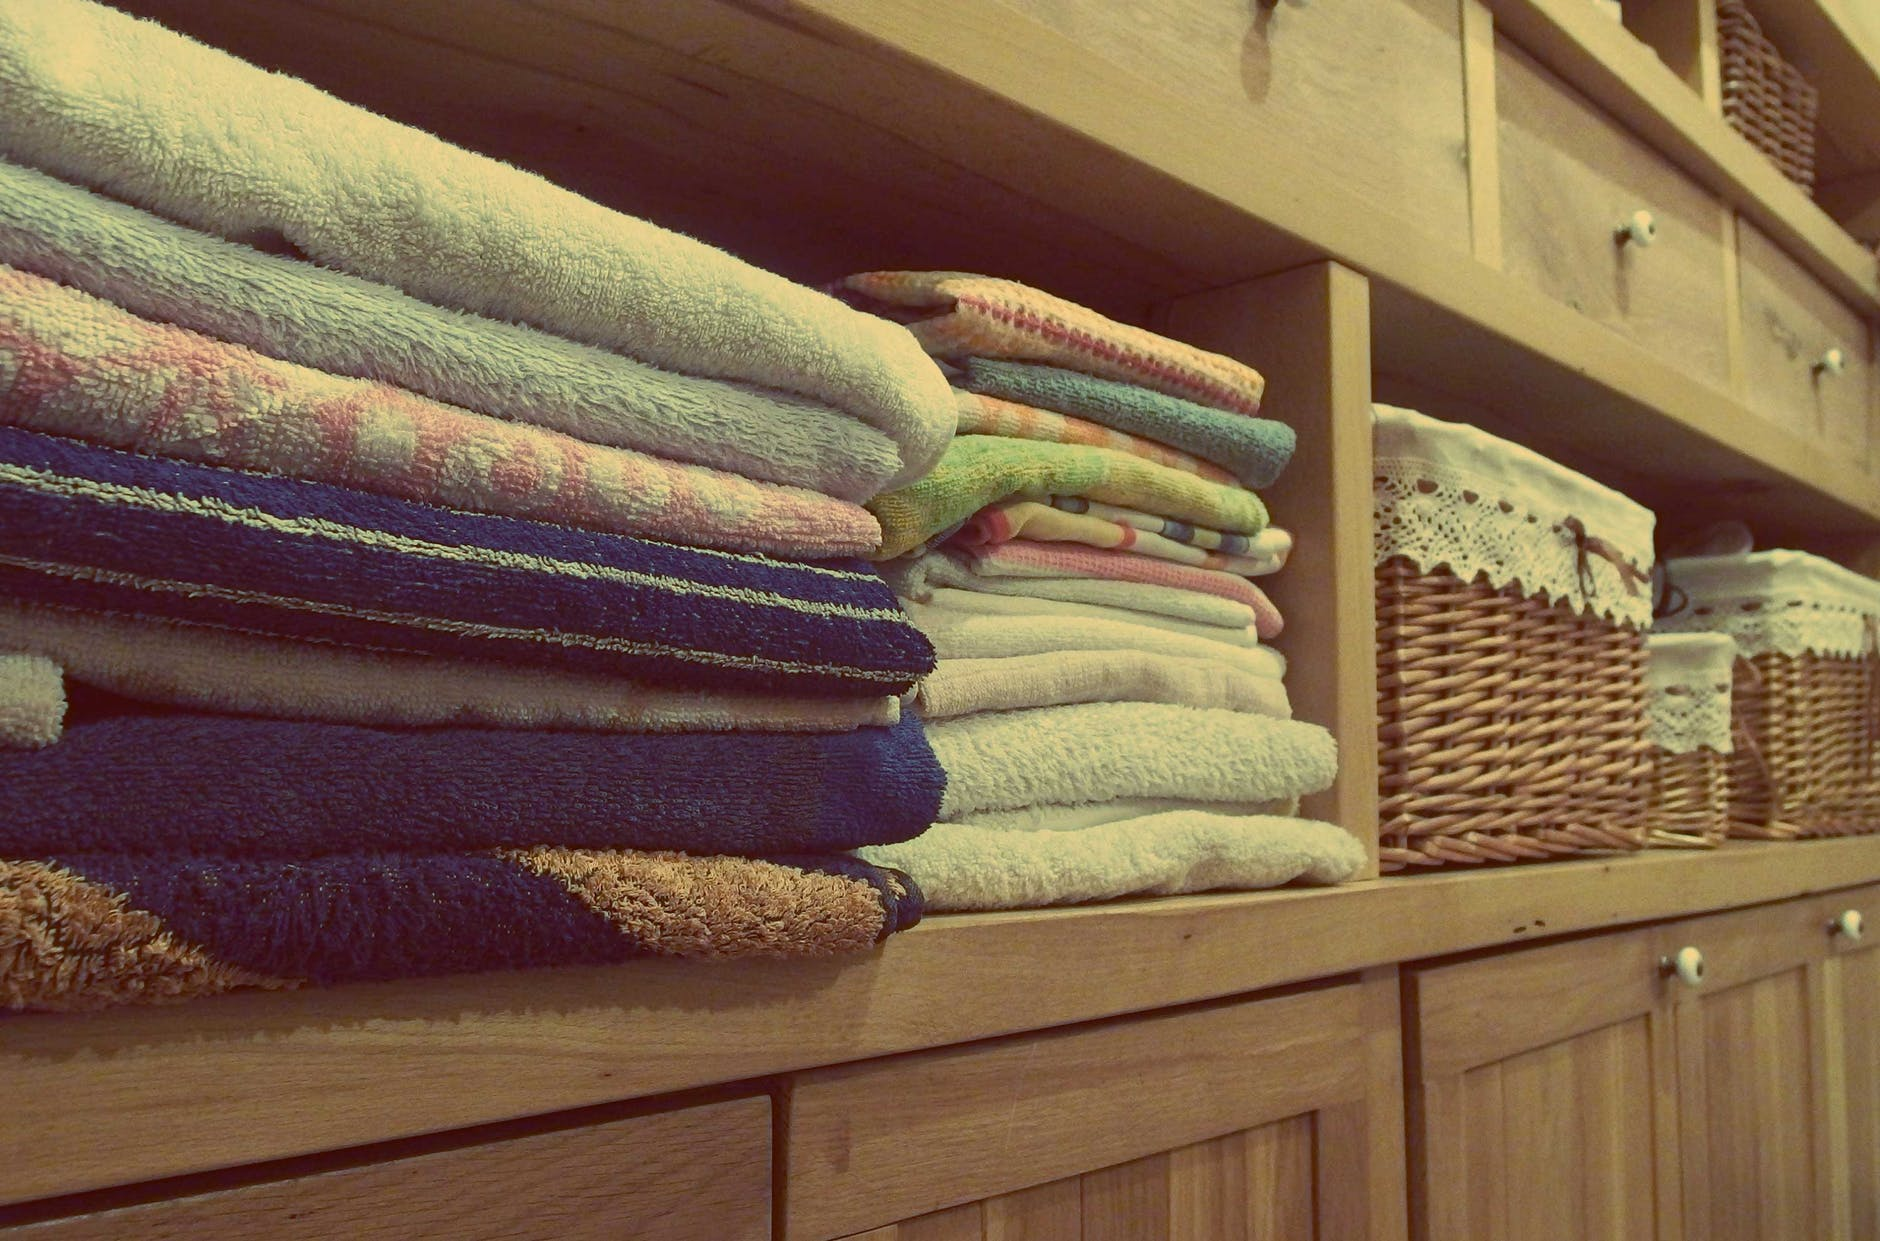 Folded towels on a shelf